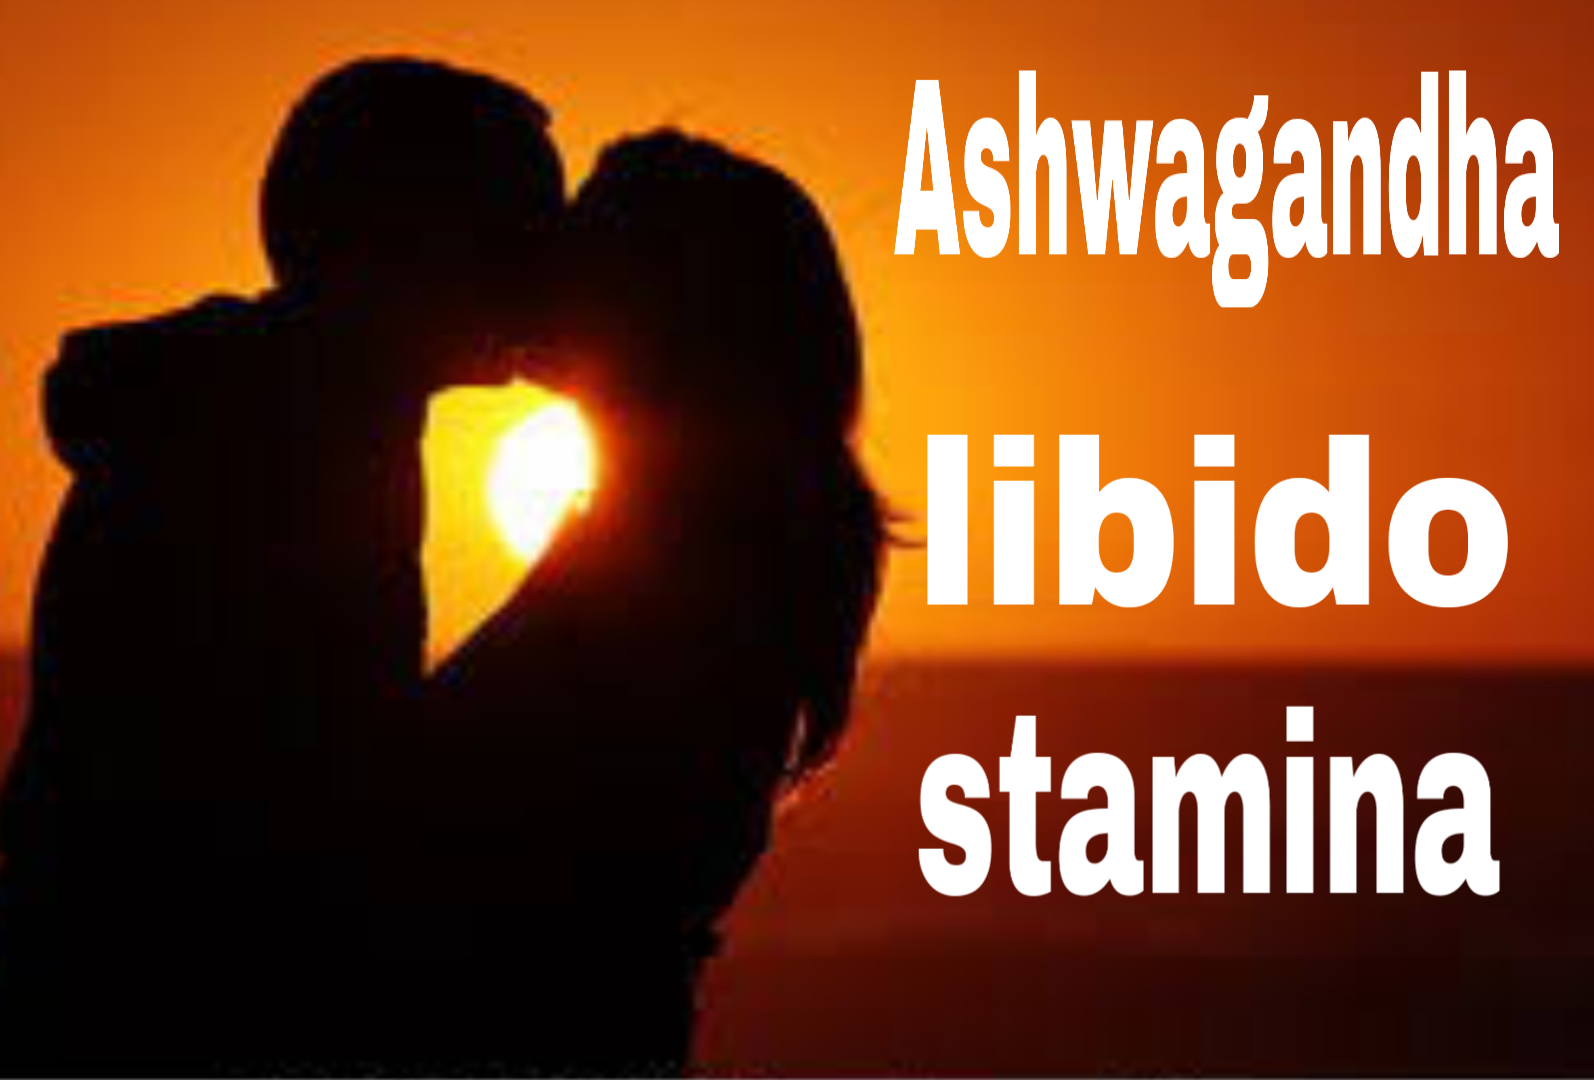 Ashwagandha for sexuality, ashwagandha for sex,ashwagandha dosage, patanjli ashwagandha,ashwagandha for ed for mens, ashwagandha sex booster, ashwagandha for libido,benifits of ashwagandha,ashwagandha for men, ashwagandha uses,